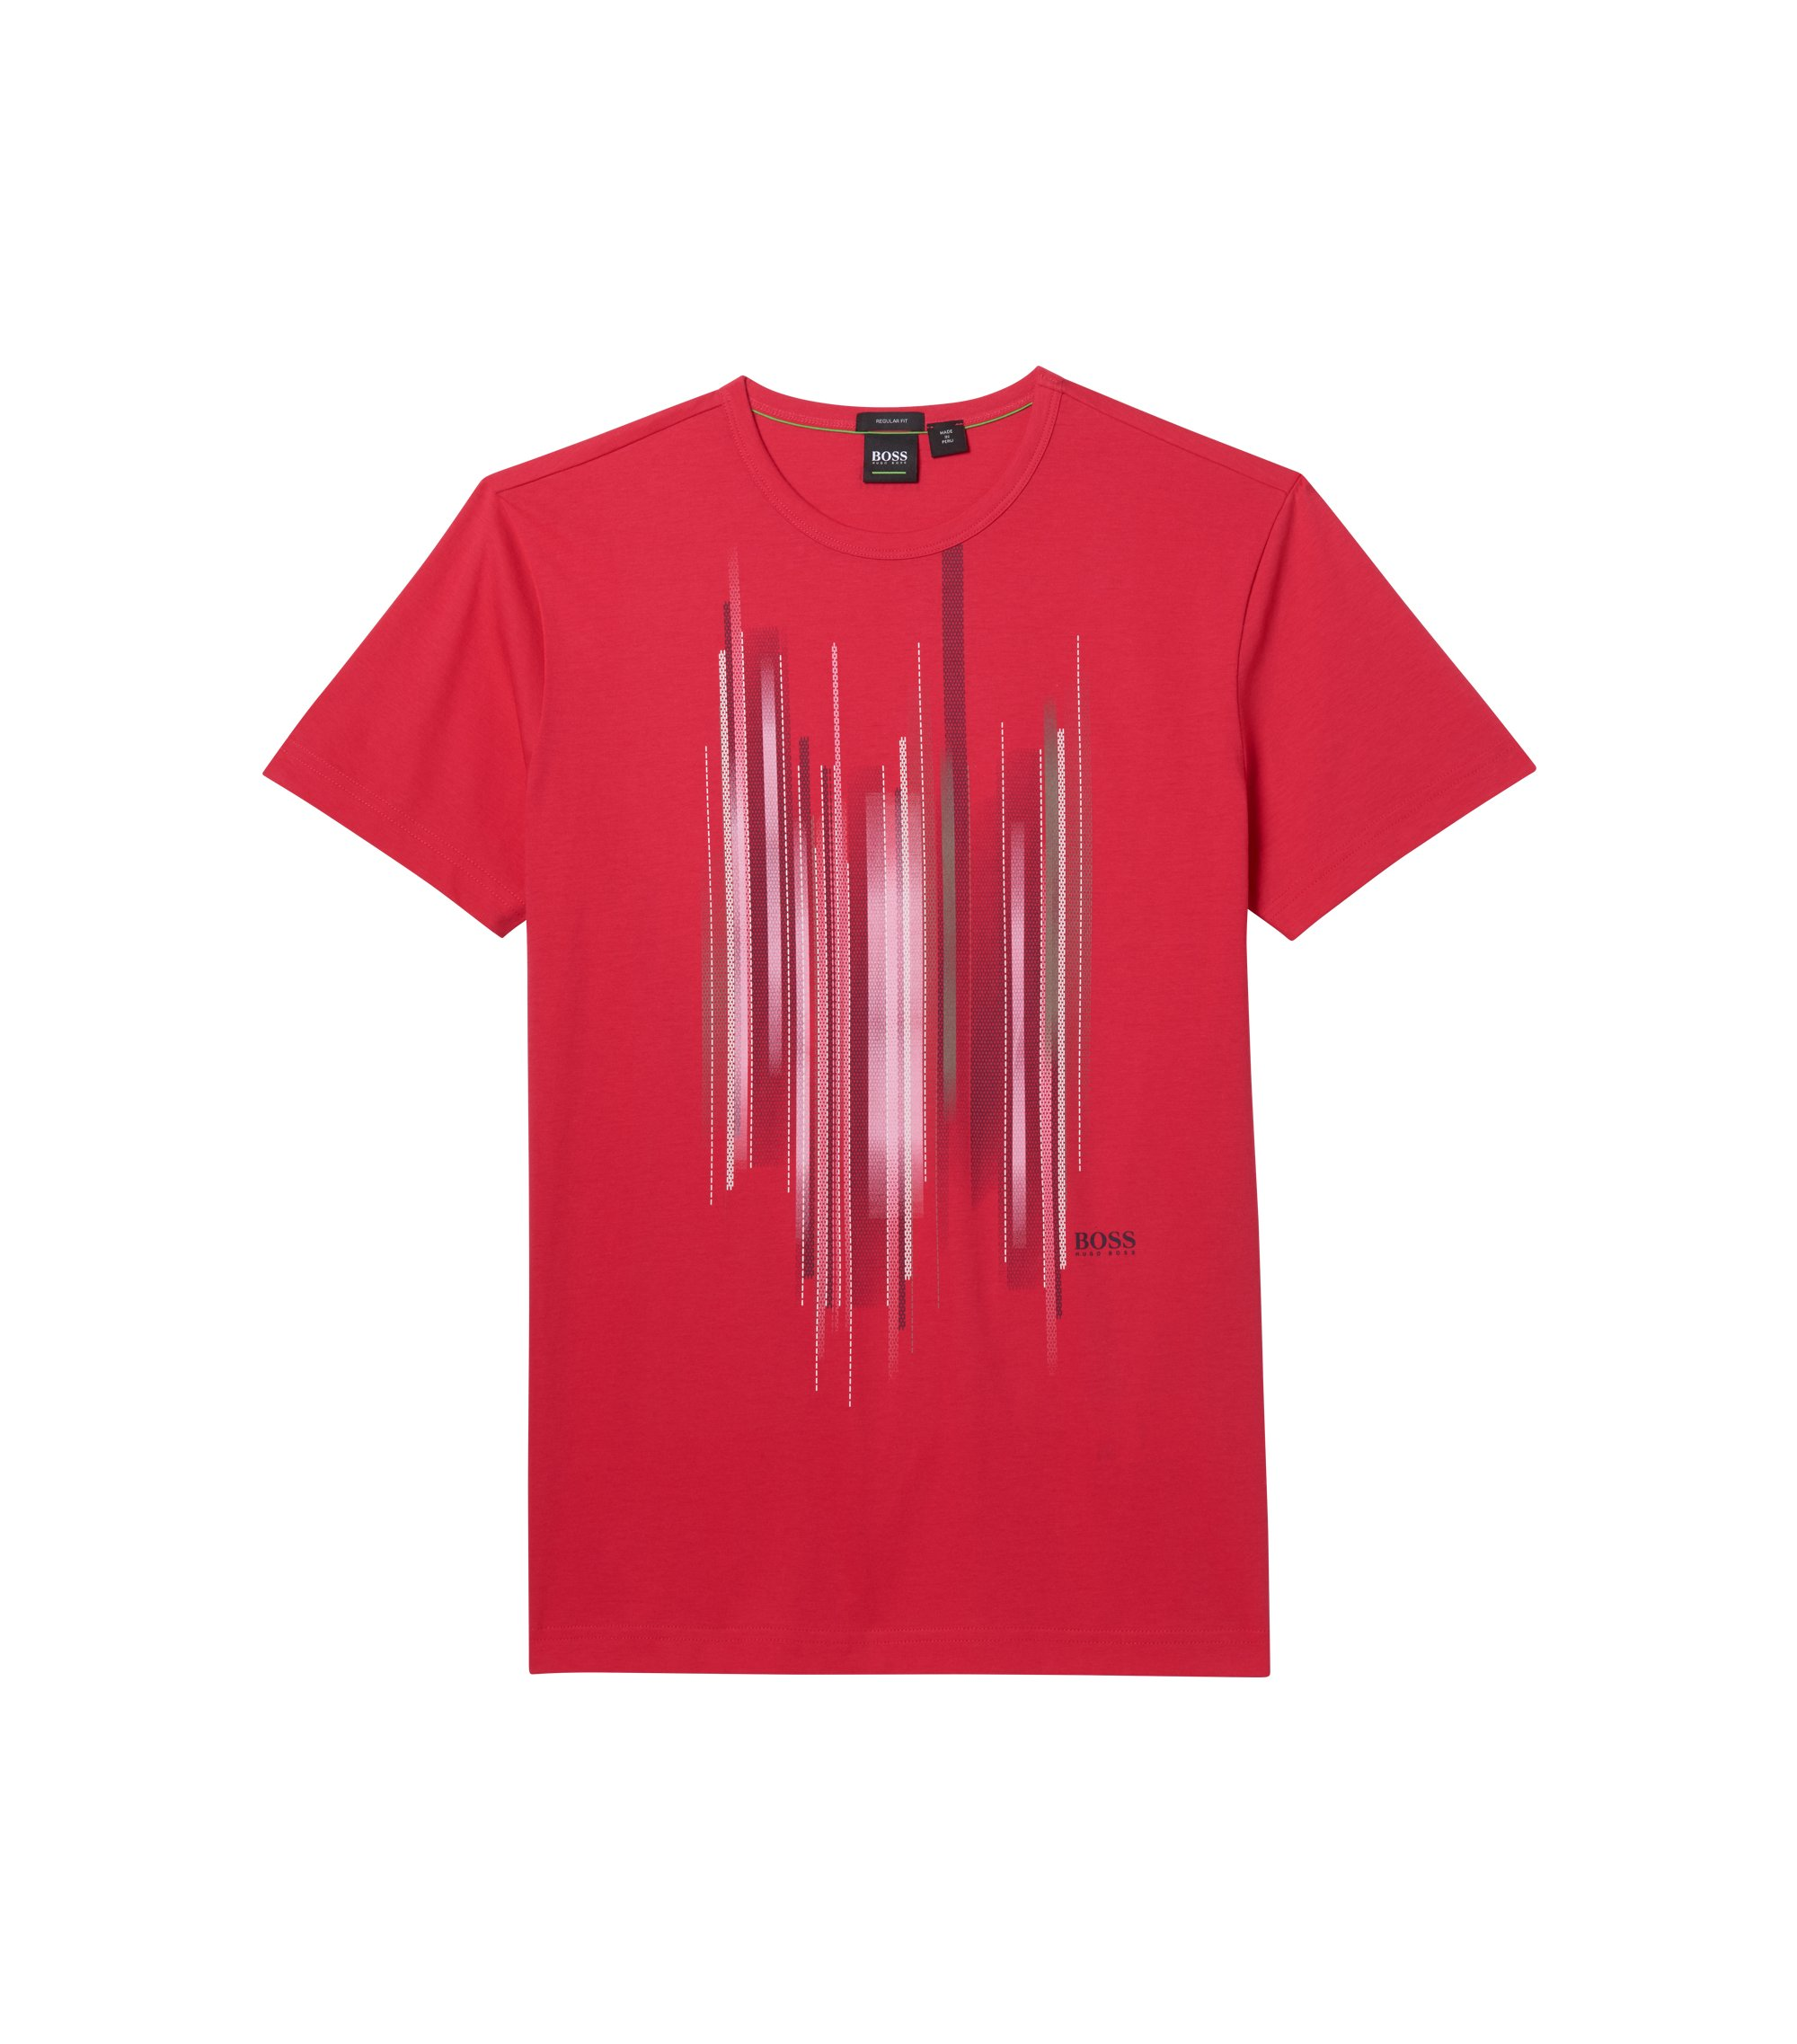 Cotton Graphic T-Shirt | Tee, Pink